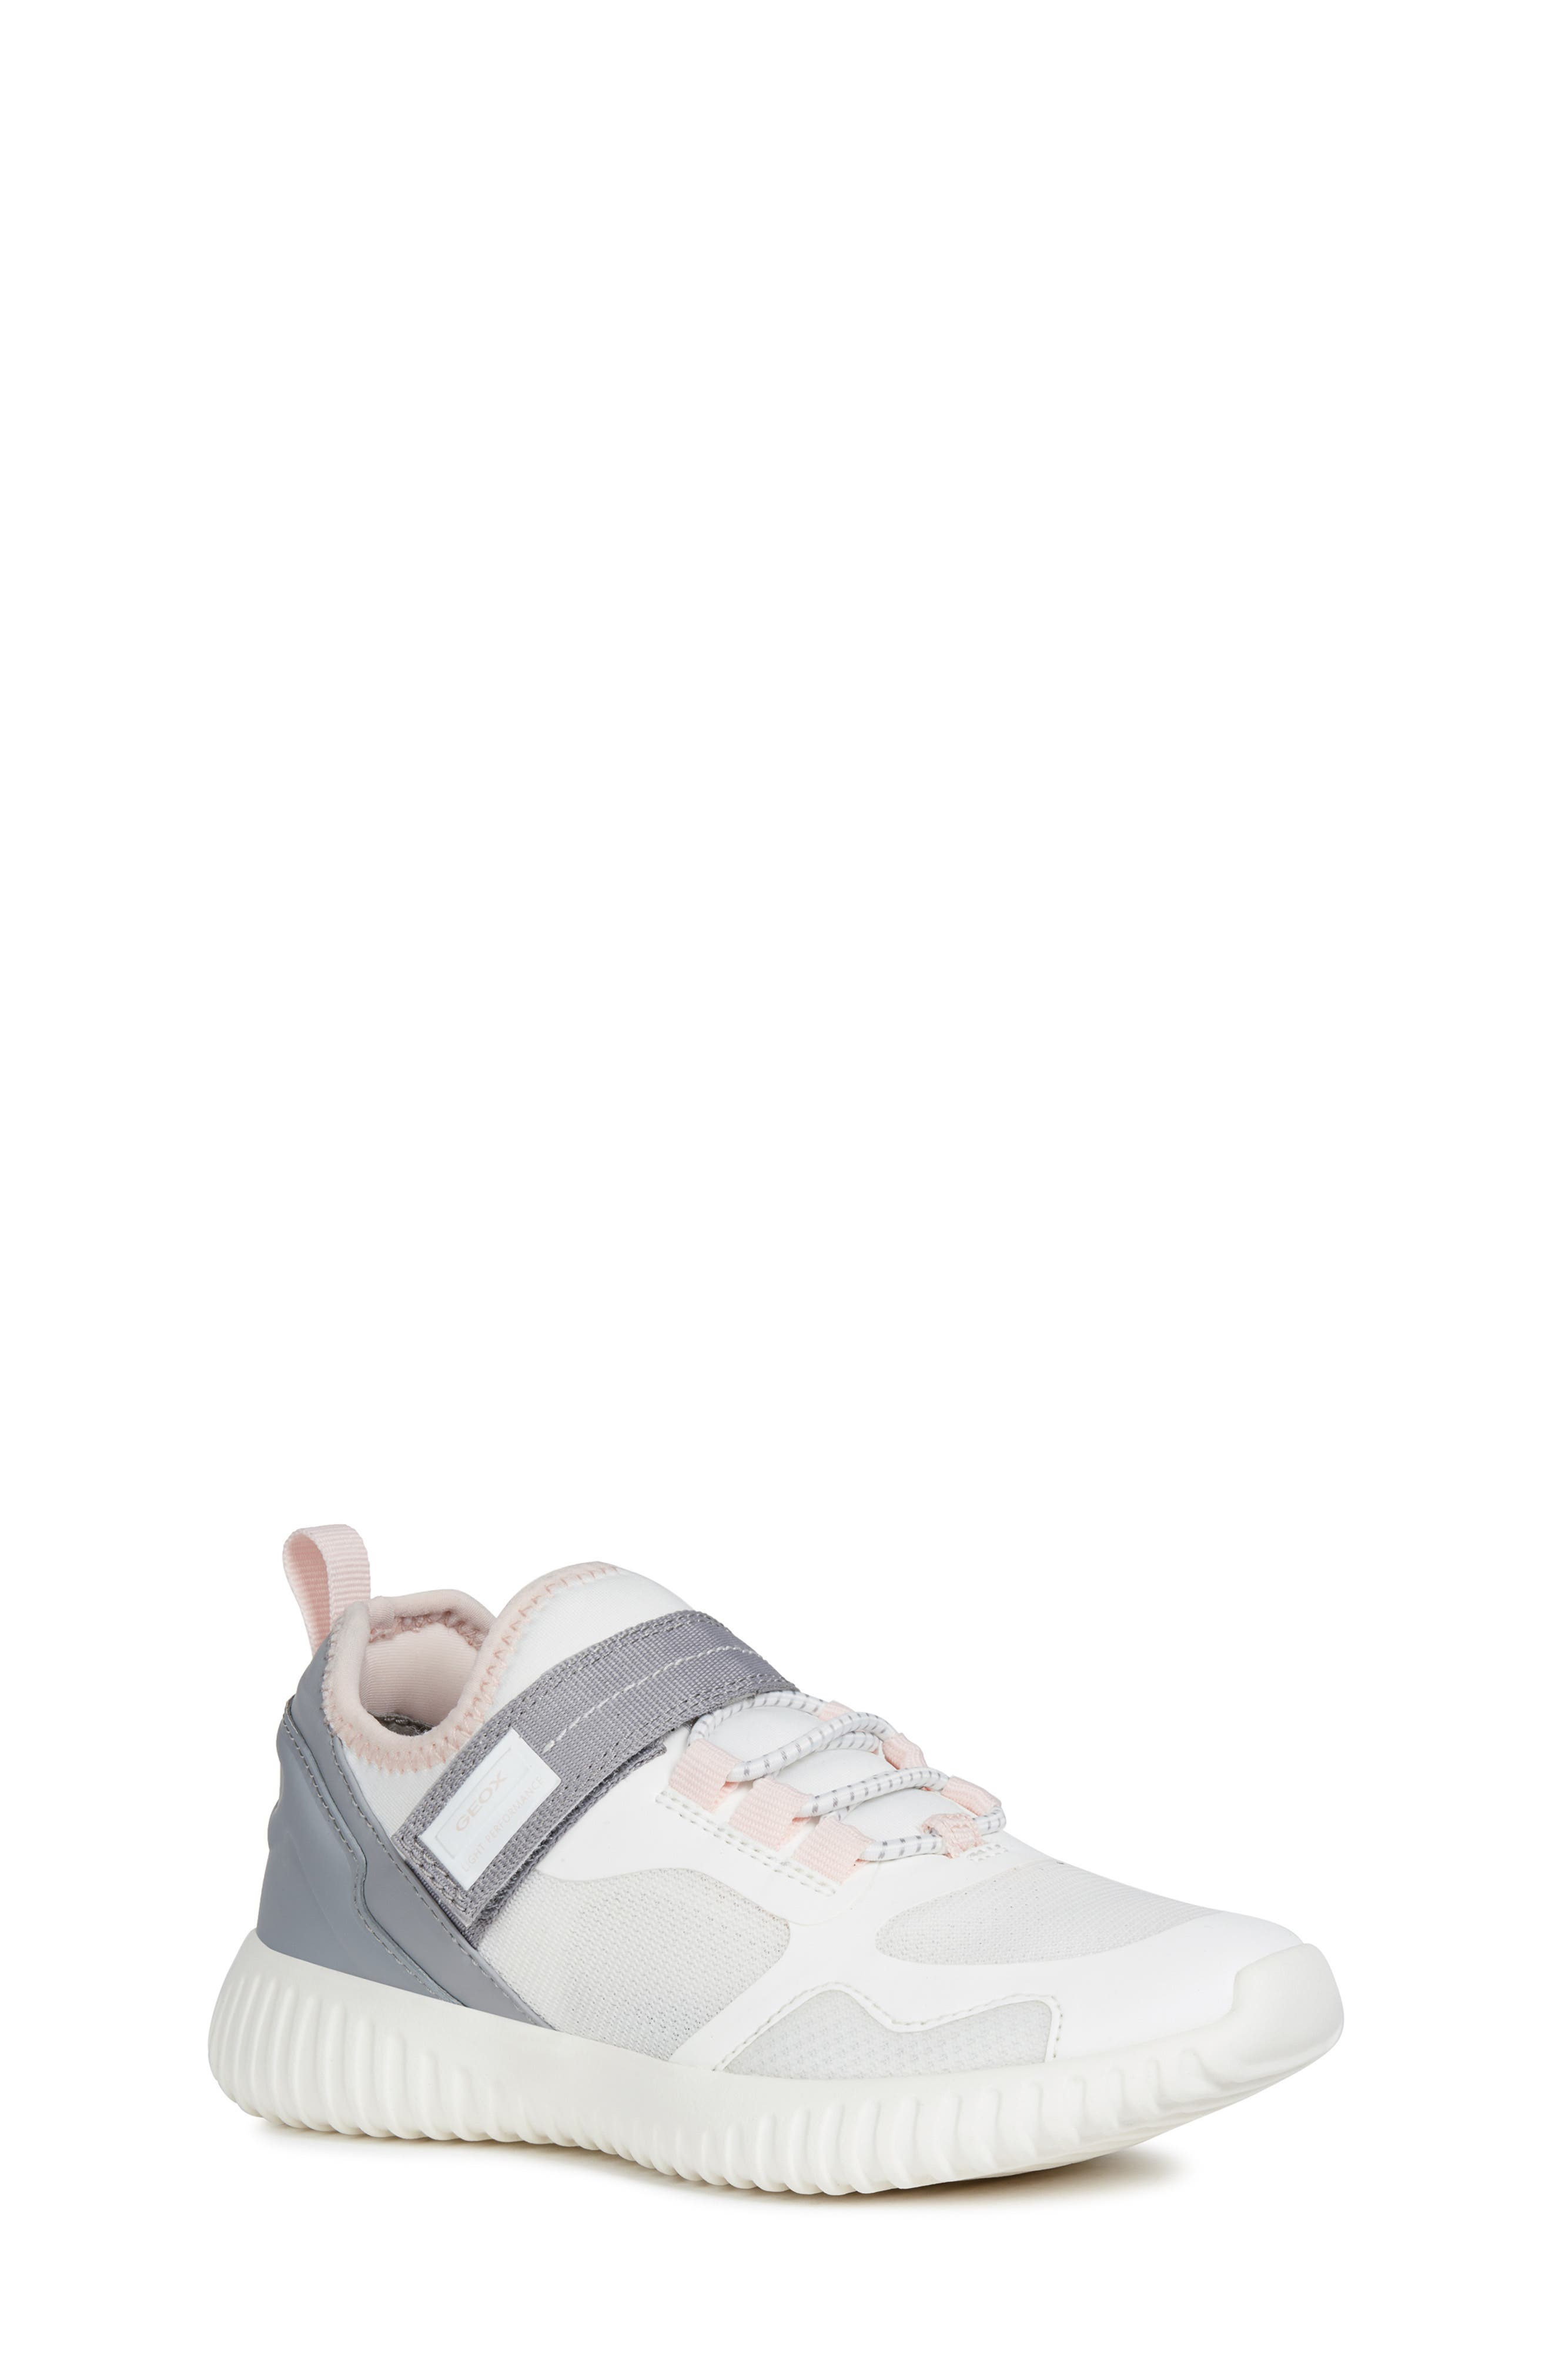 GEOX, Waviness Sneaker, Main thumbnail 1, color, WHITE/ GREY